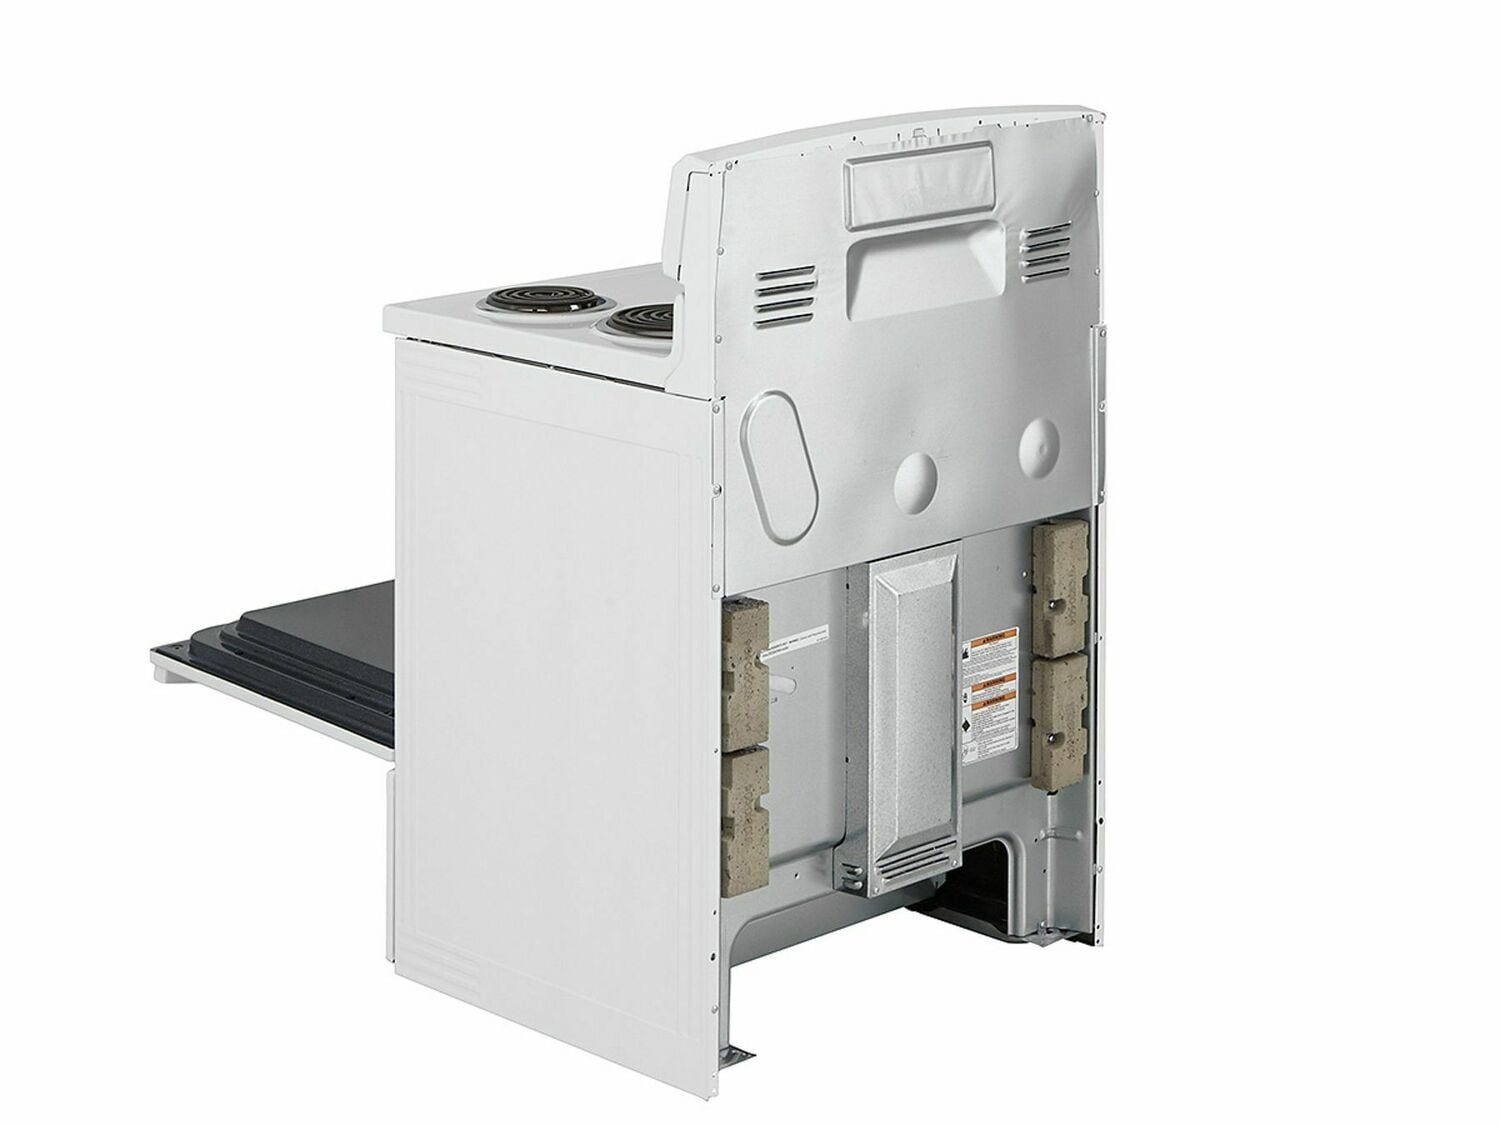 Load image into Gallery viewer, Amana ACR2303MFW 30-Inch Electric Range With Warm Hold - White